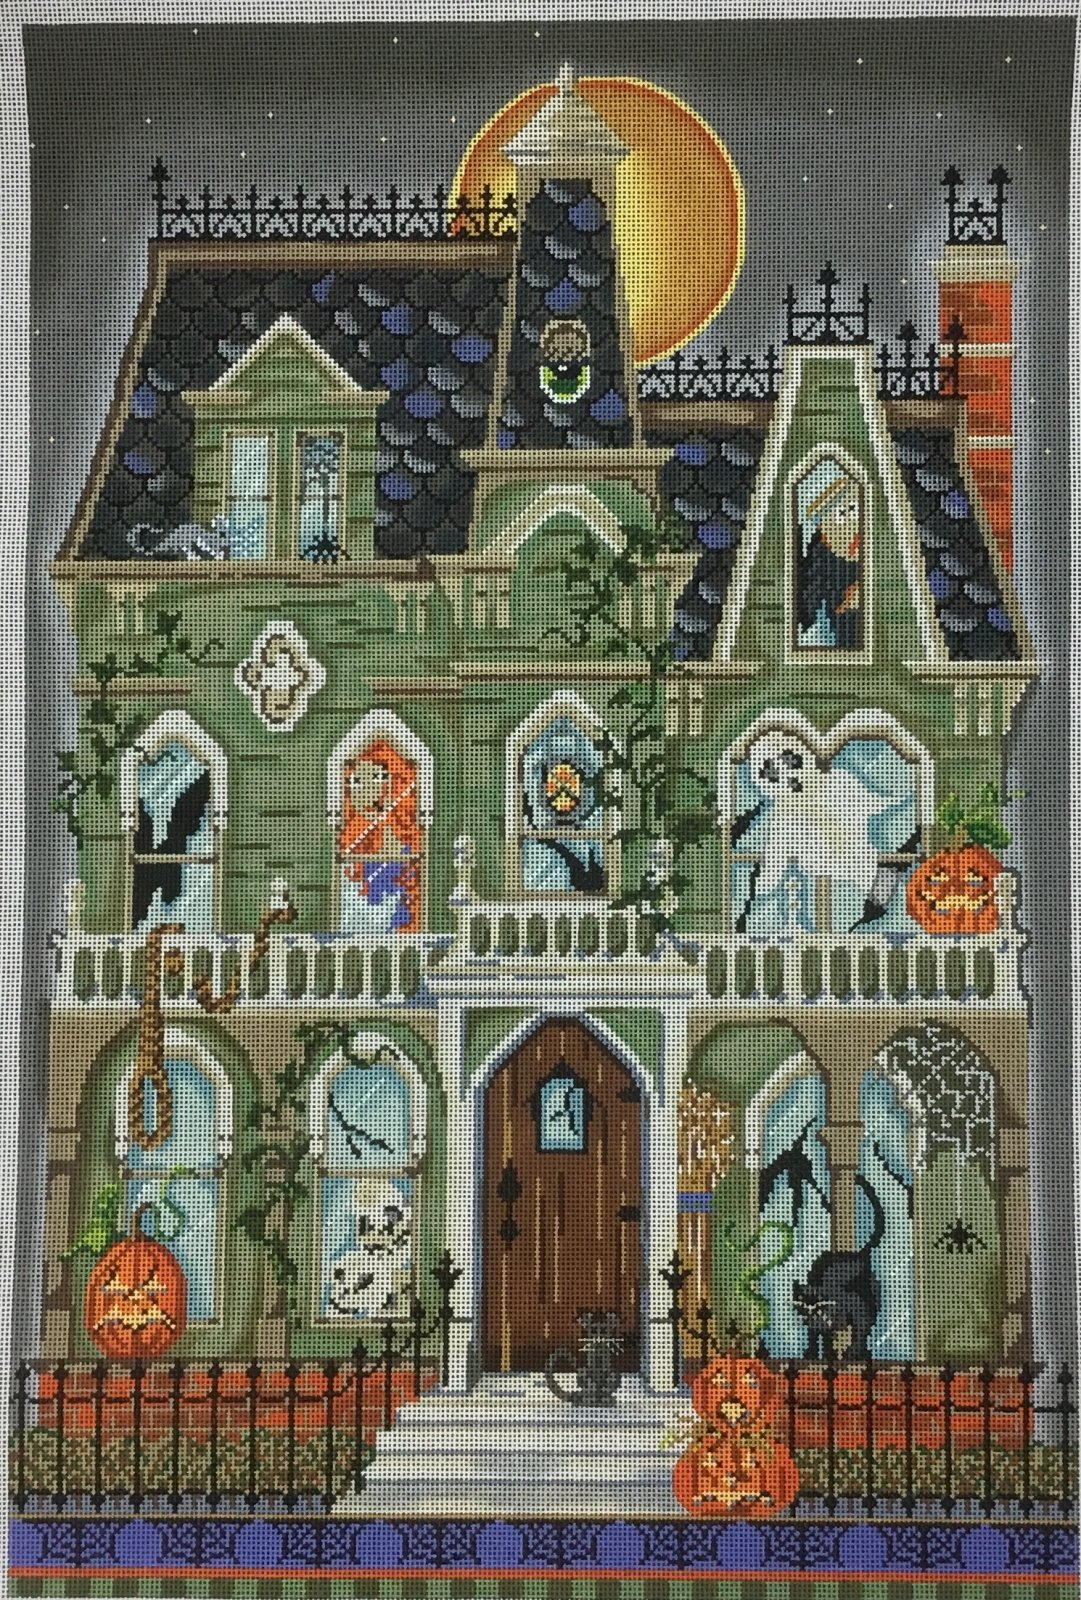 Haunted House,18 ct.,12 3/4x18 3/4